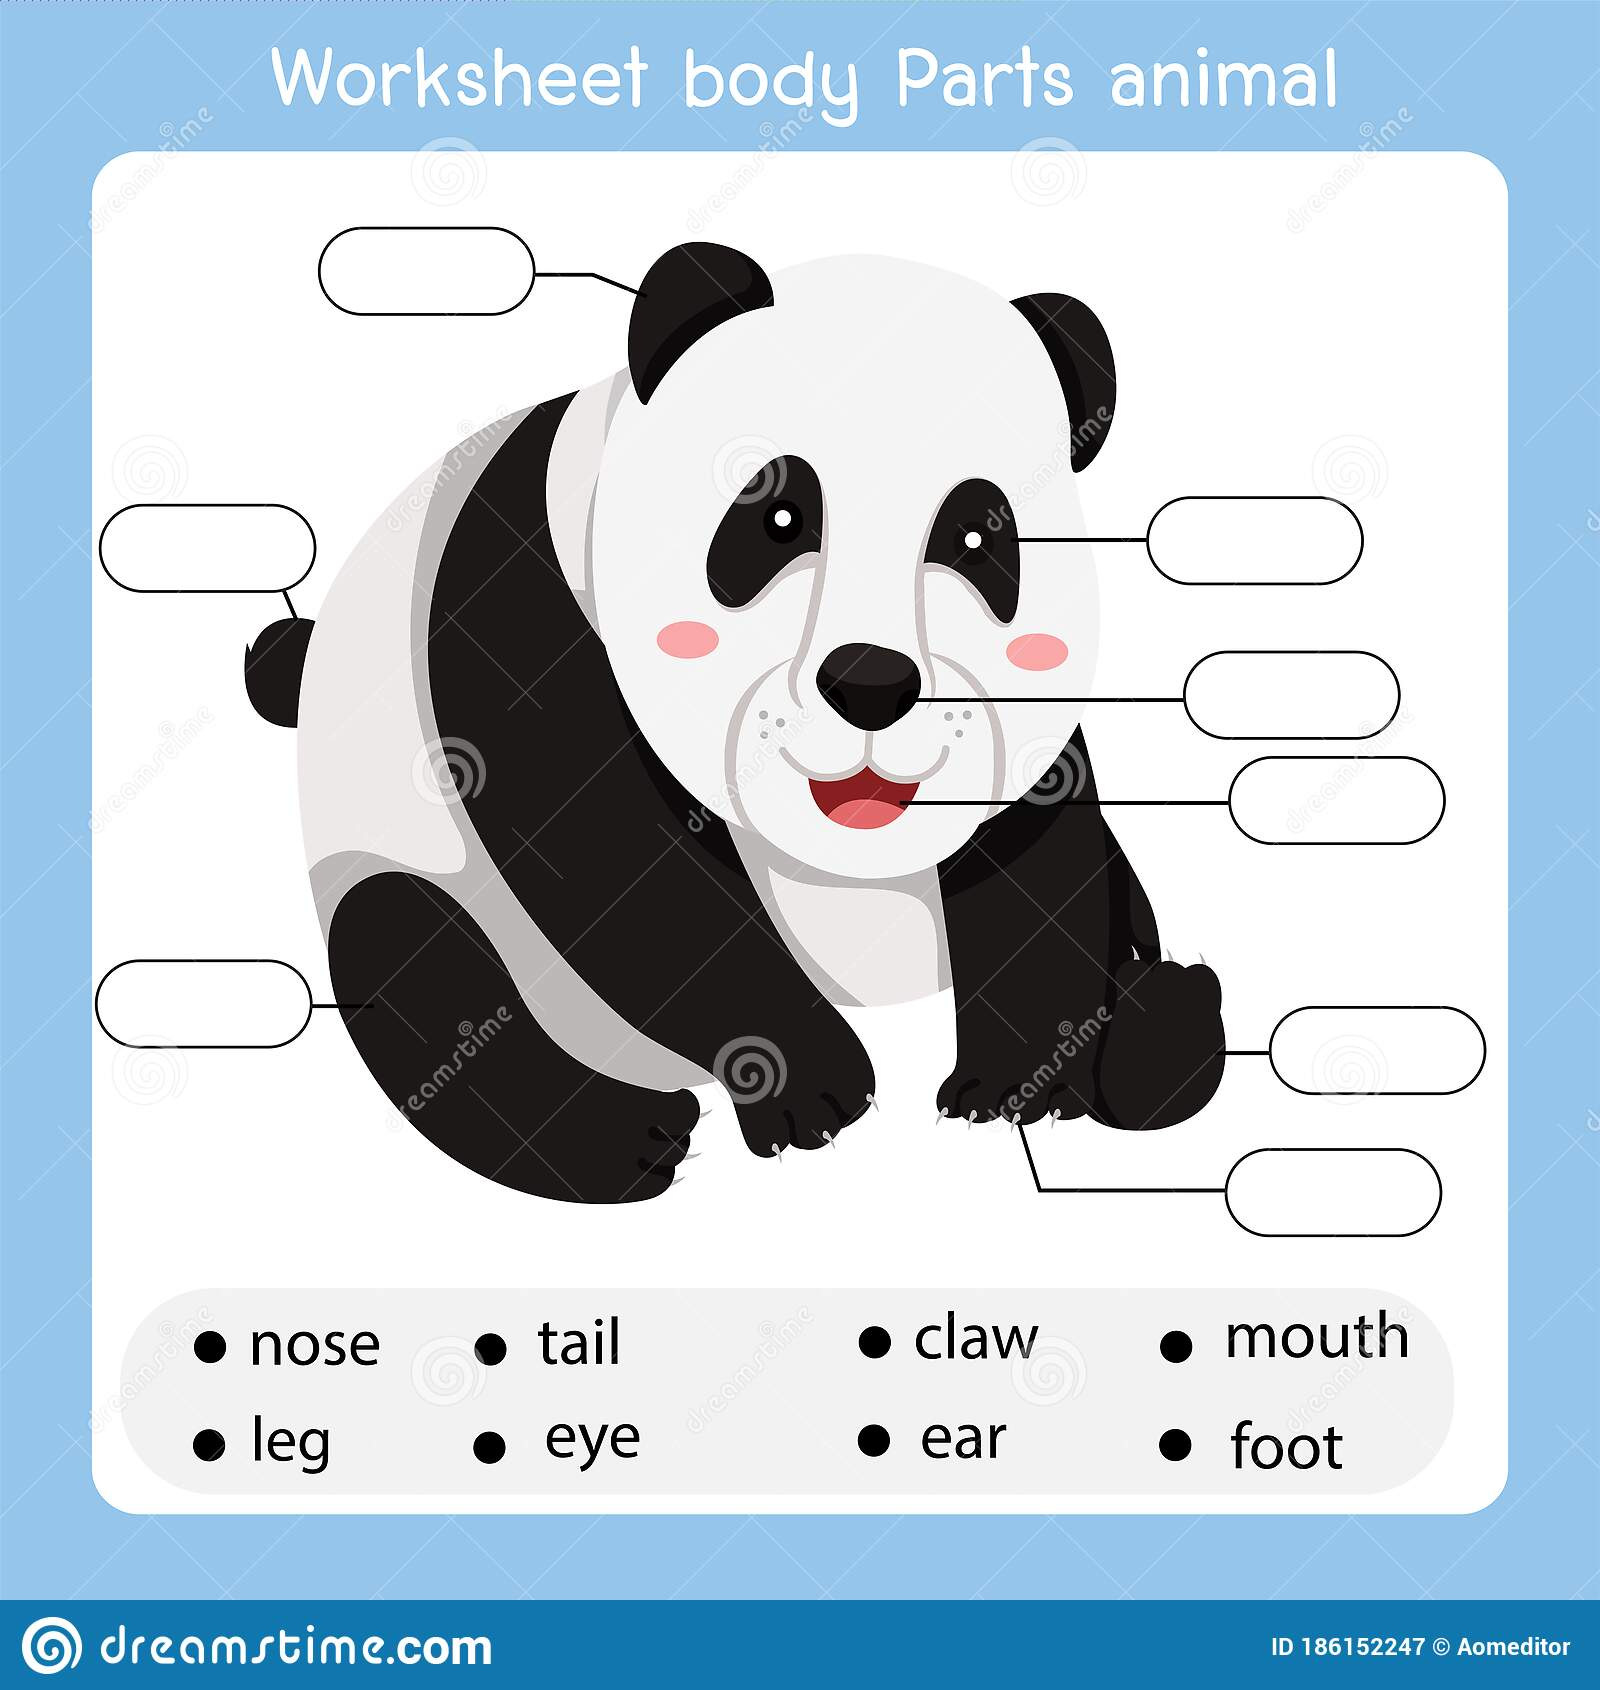 Illustrator Of Worksheet Body Parts Panda Animal Stock